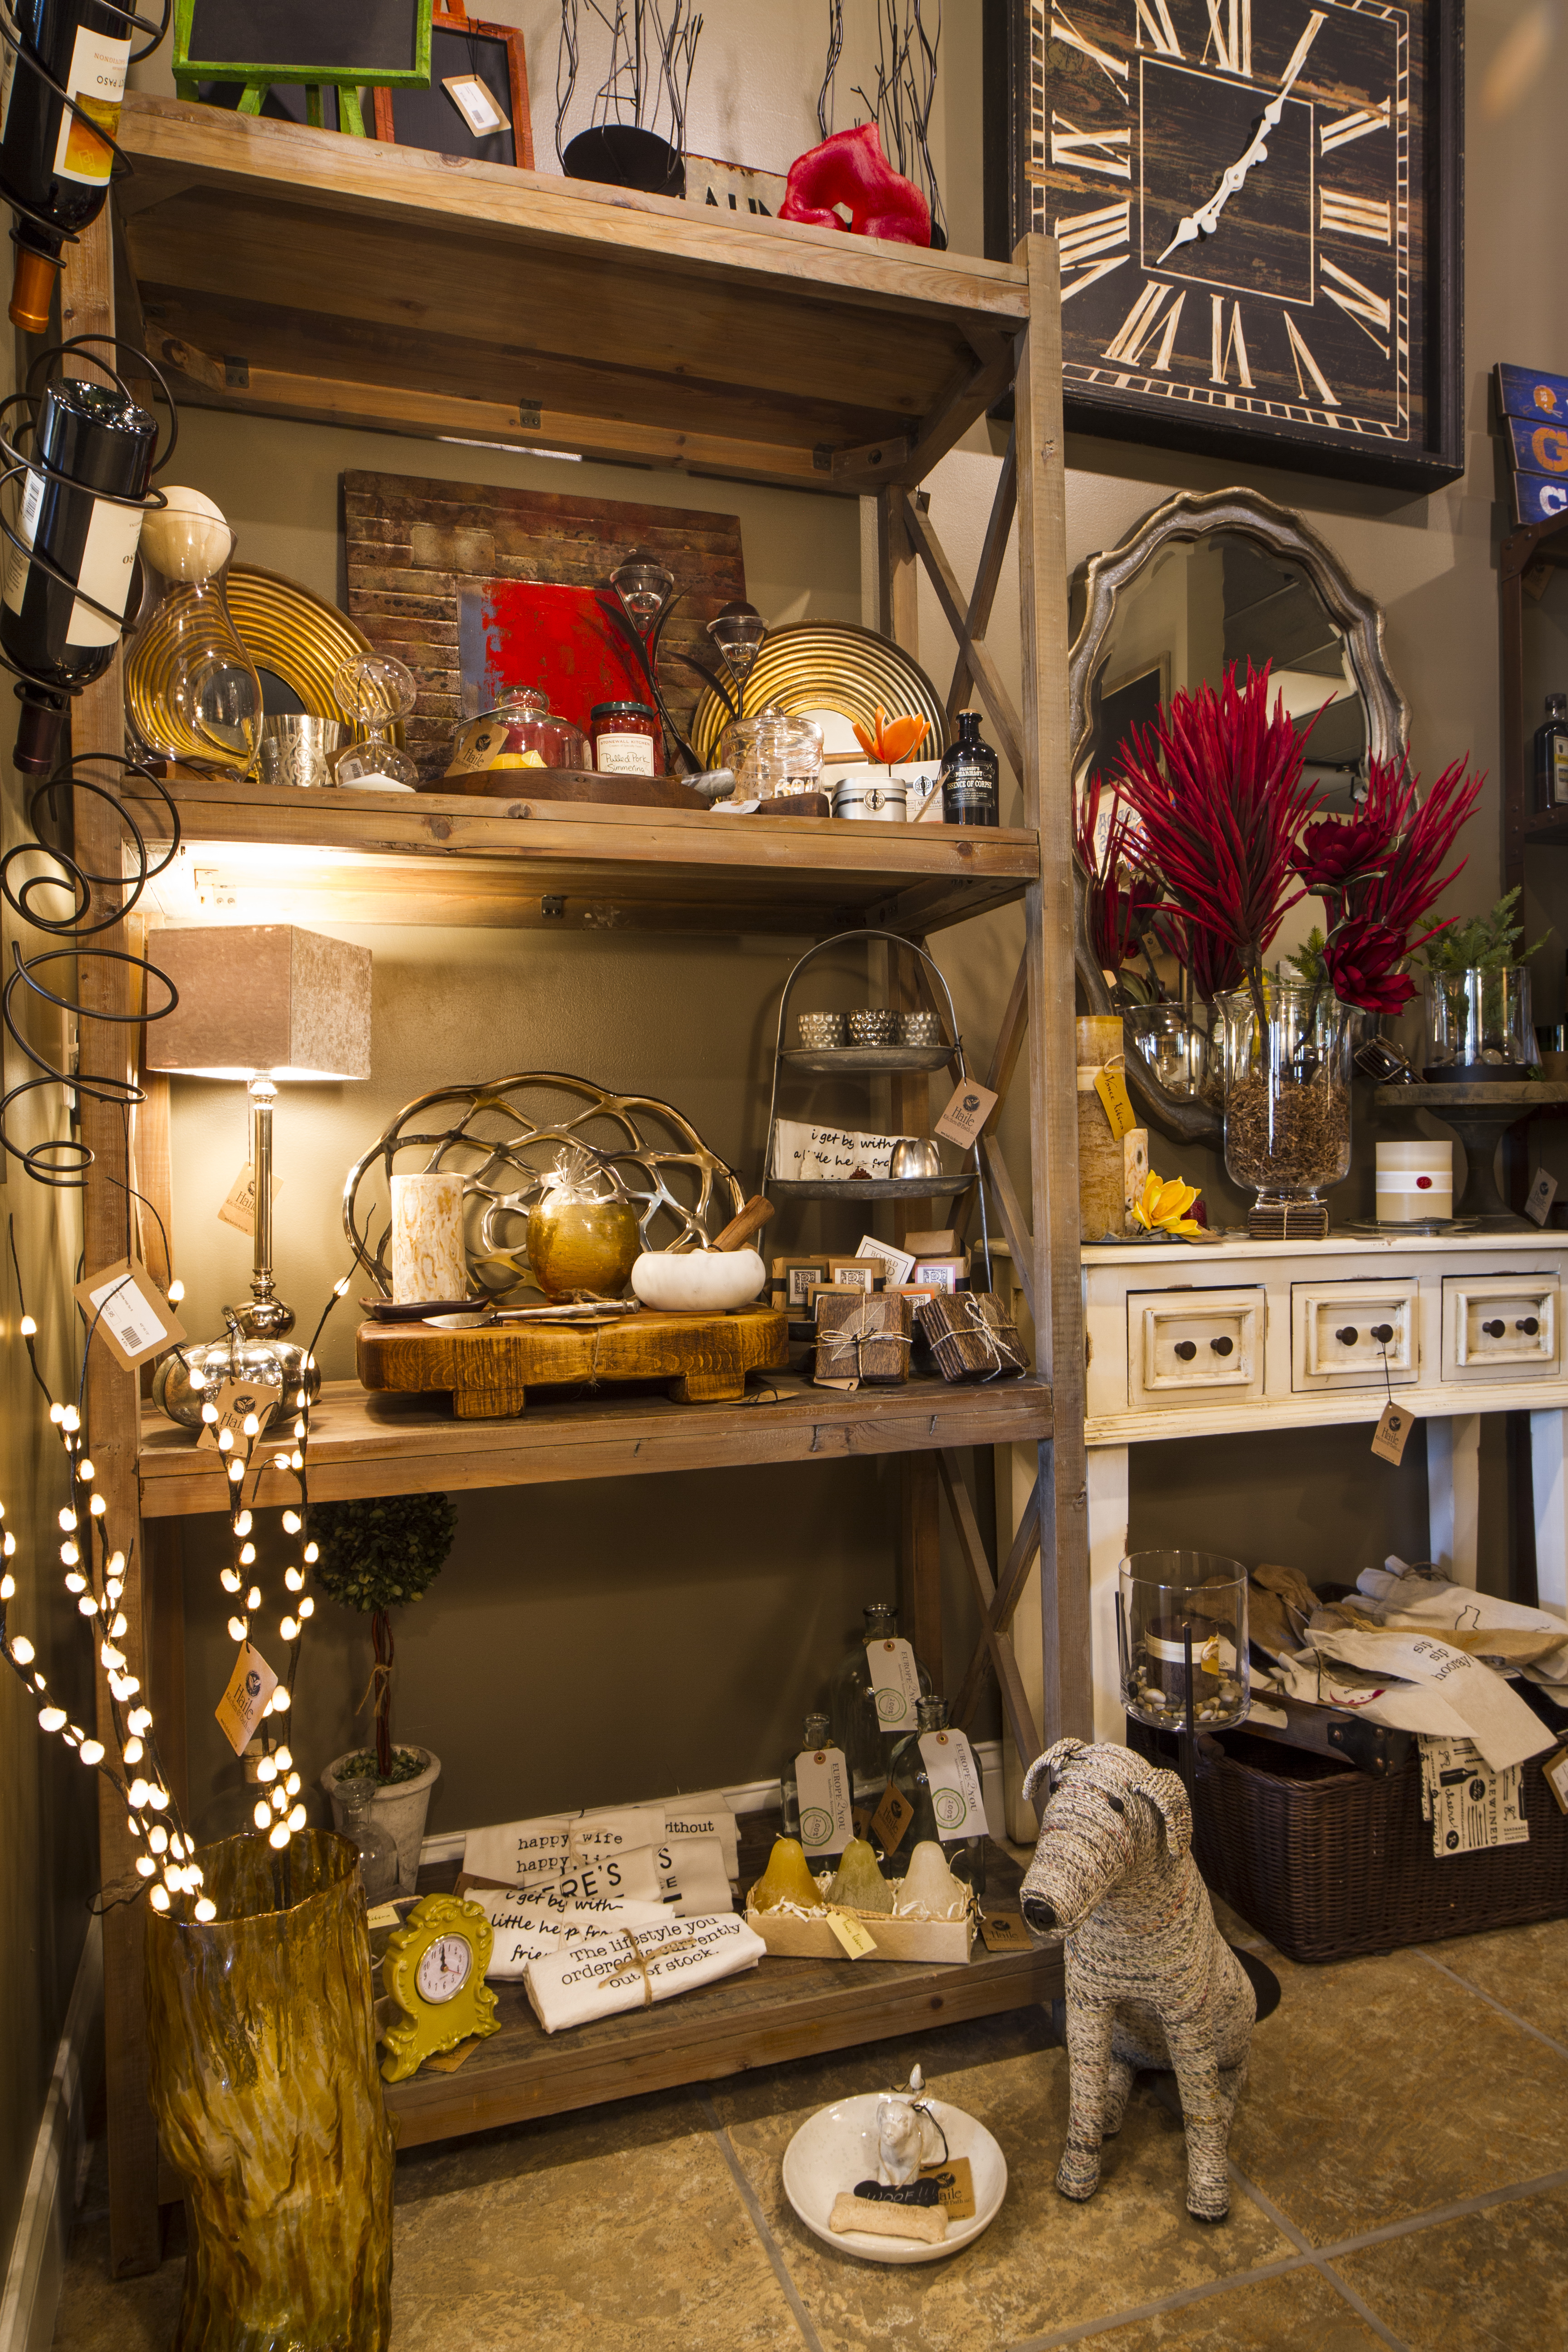 Haile Kitchen & Bath: Gifts Galore – HOME: Living in Greater Gainesville